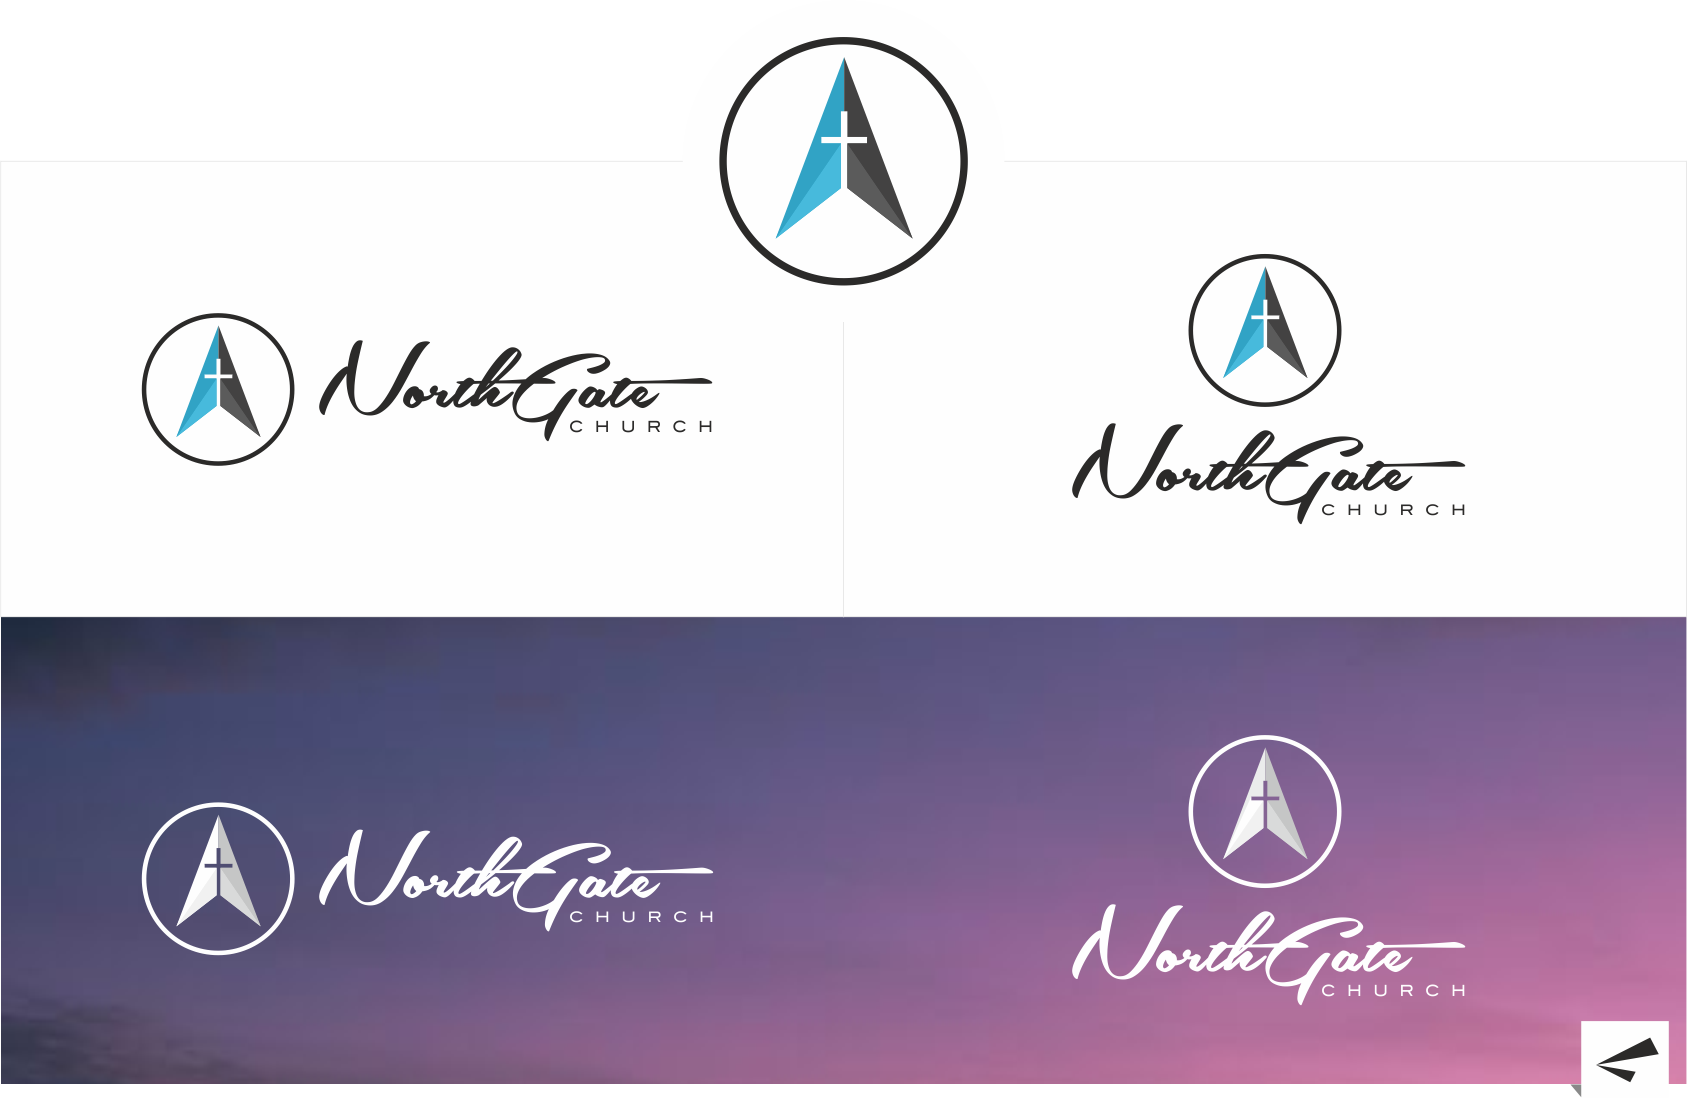 add your flair and expertise to perfect our concept logo